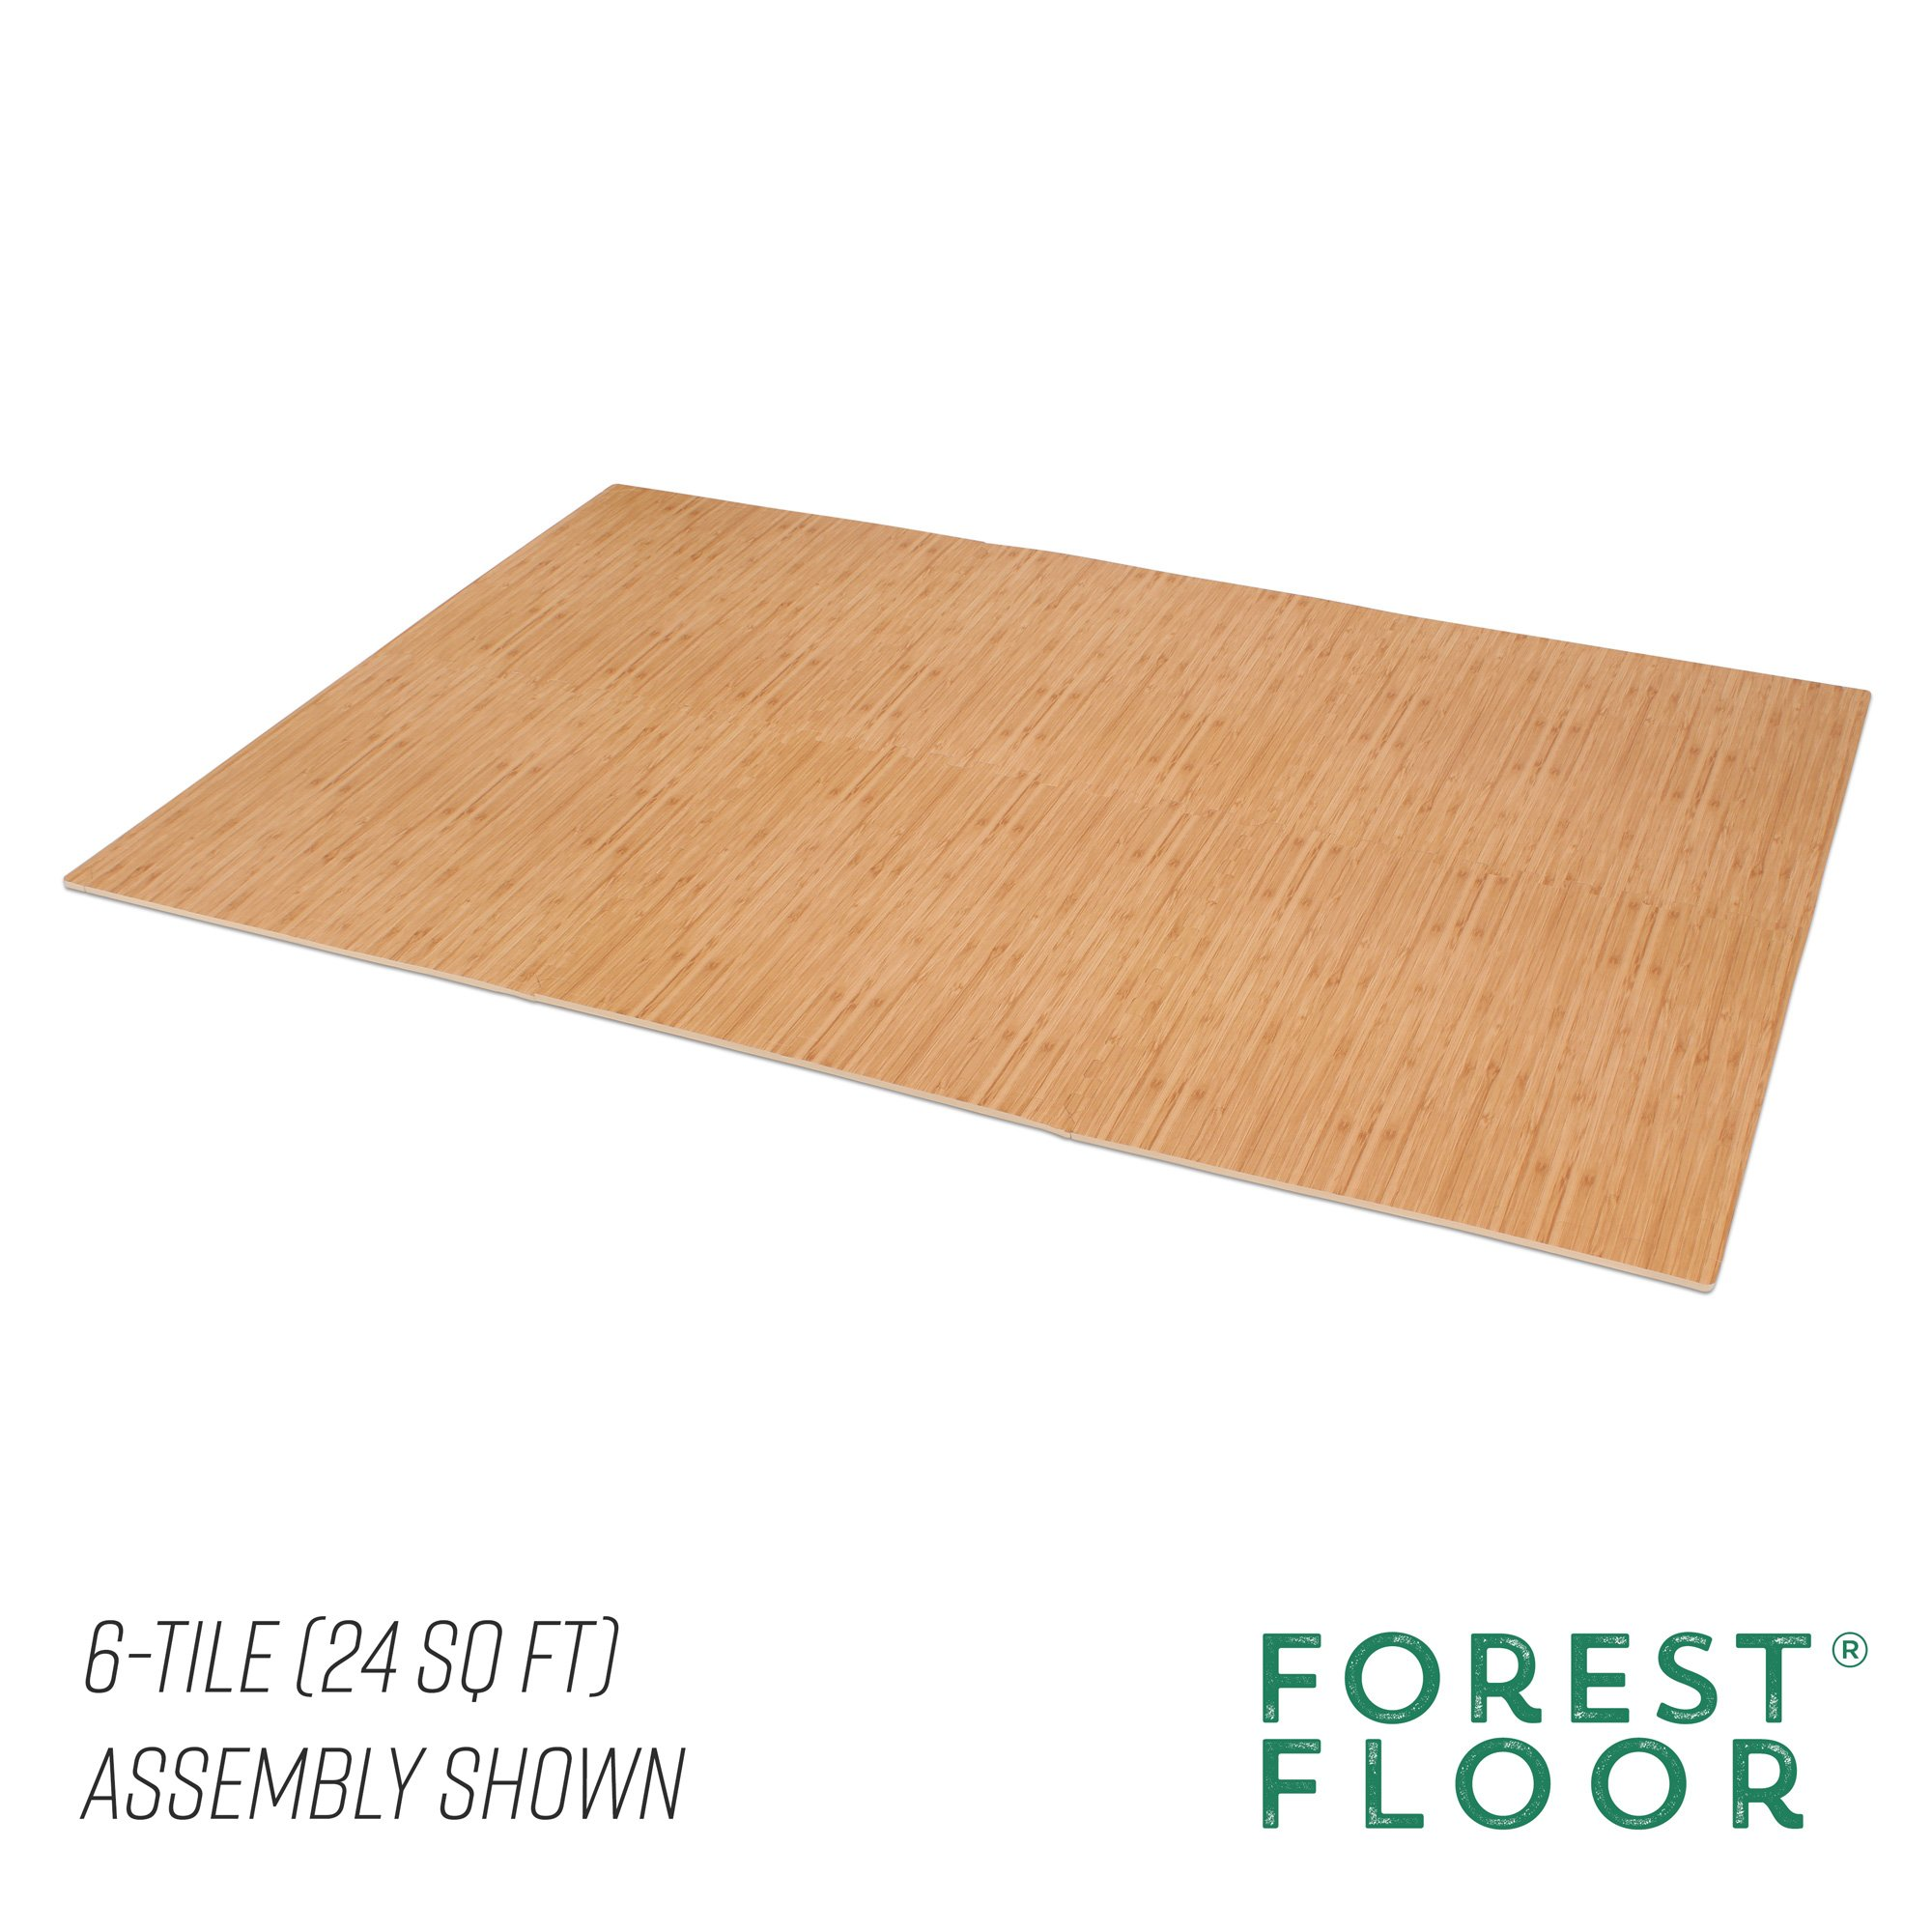 Forest Floor 3/8'' Thick Printed Wood Grain Interlocking Foam Floor Mats, 16 Sq Ft (4 Tiles), Light Bamboo by Forest Floor (Image #5)